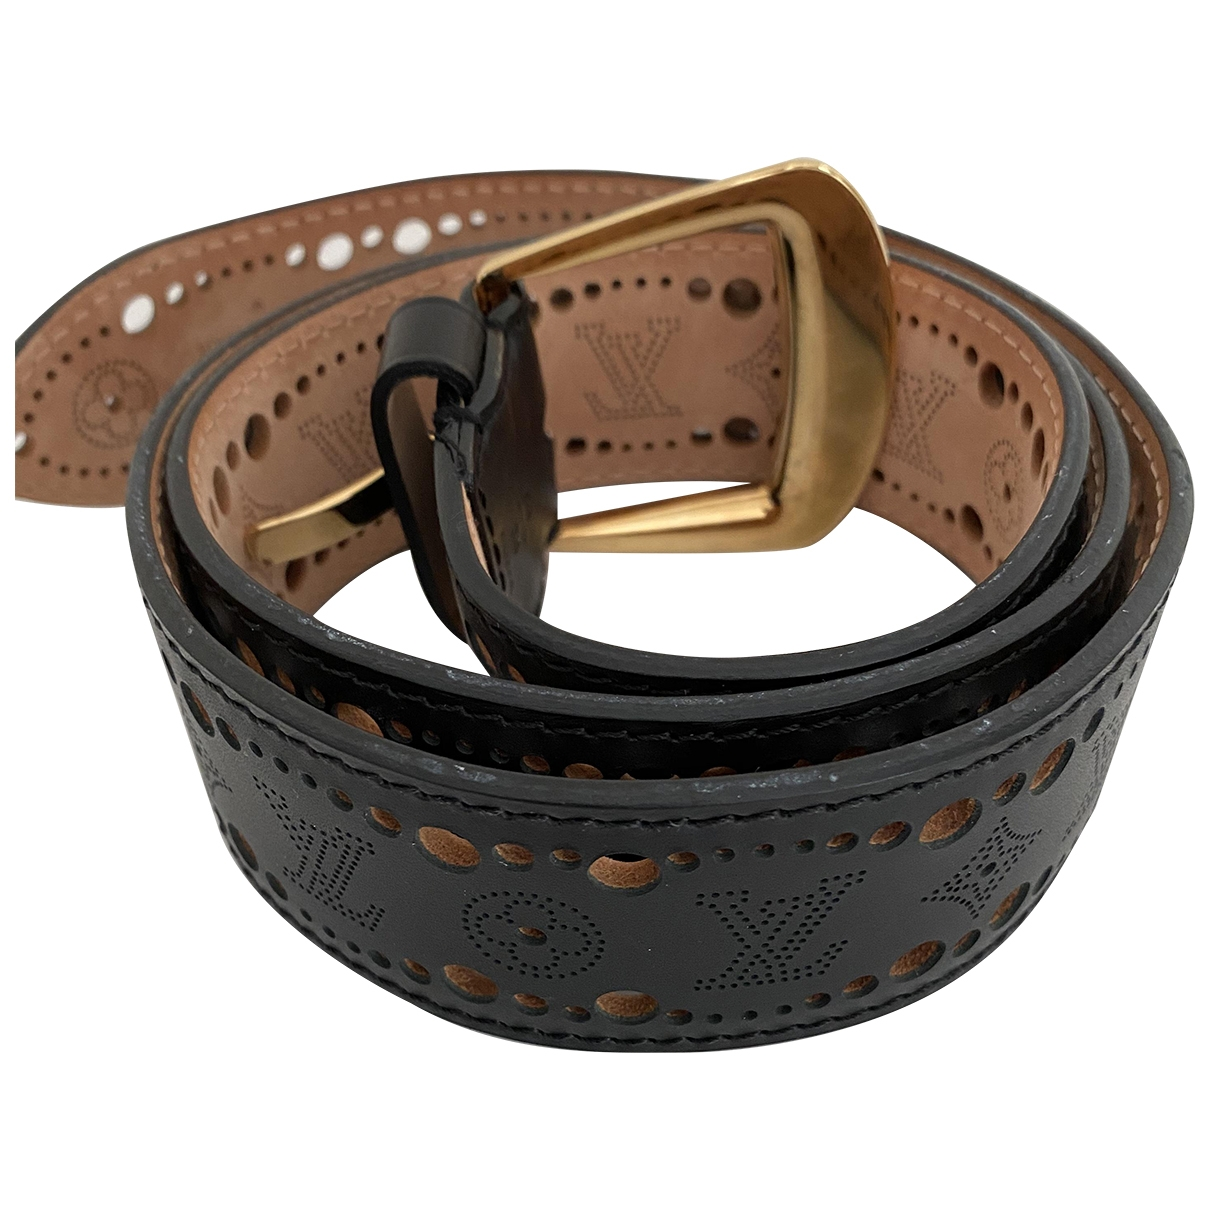 Louis Vuitton \N Black Leather belt for Women 90 cm